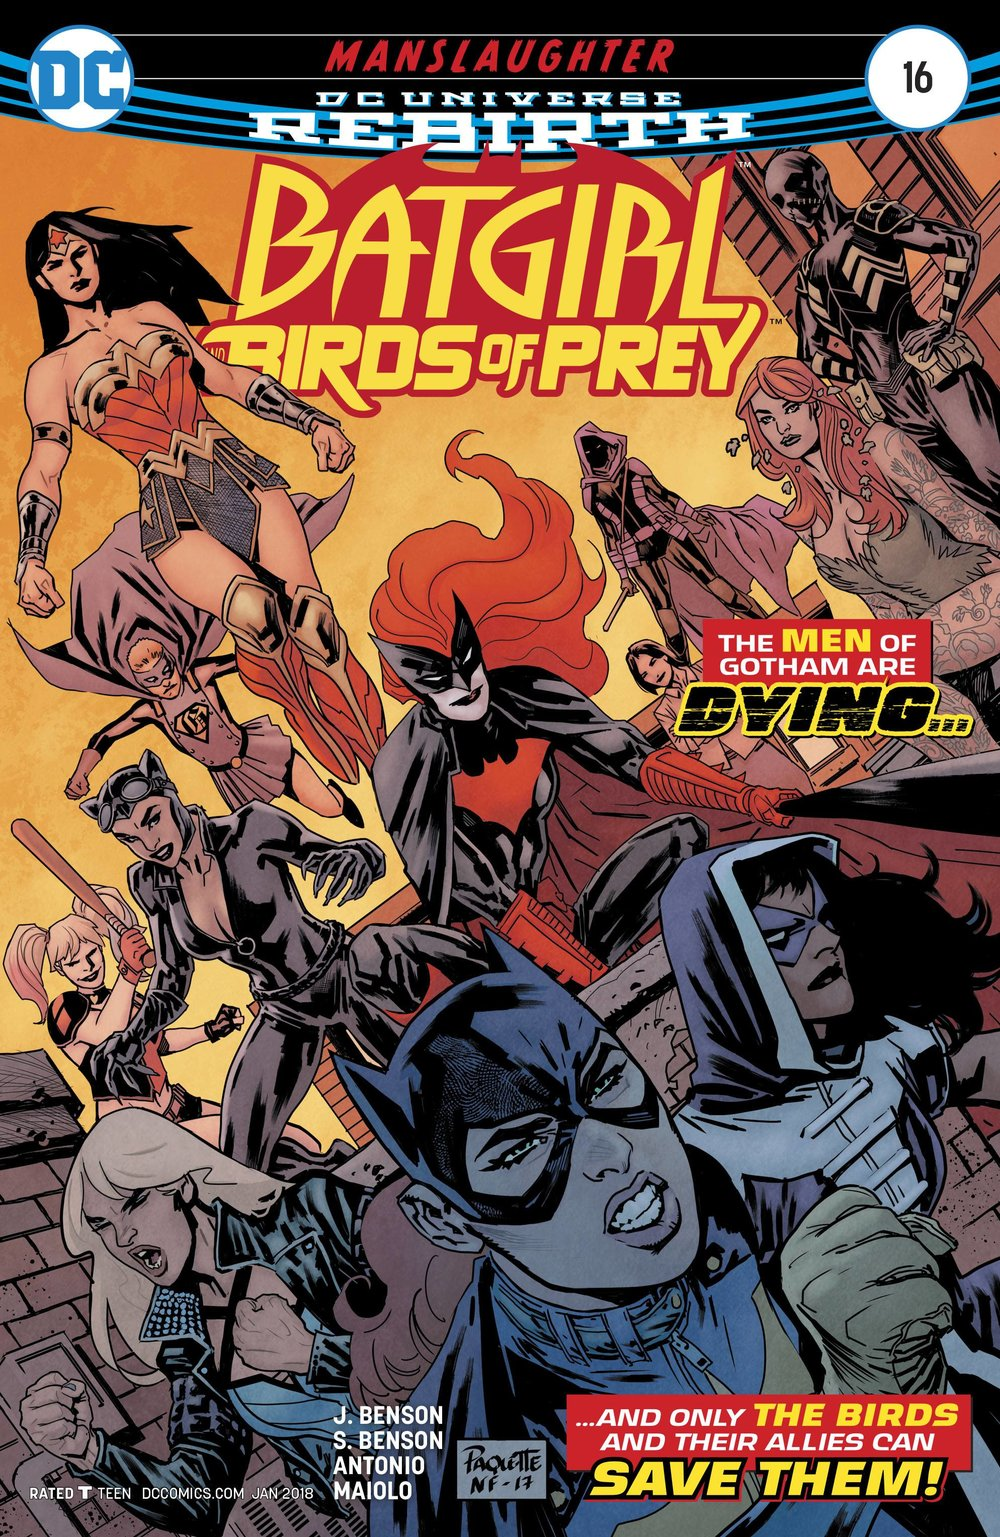 BATGIRL AND THE BIRDS OF PREY 16.jpg